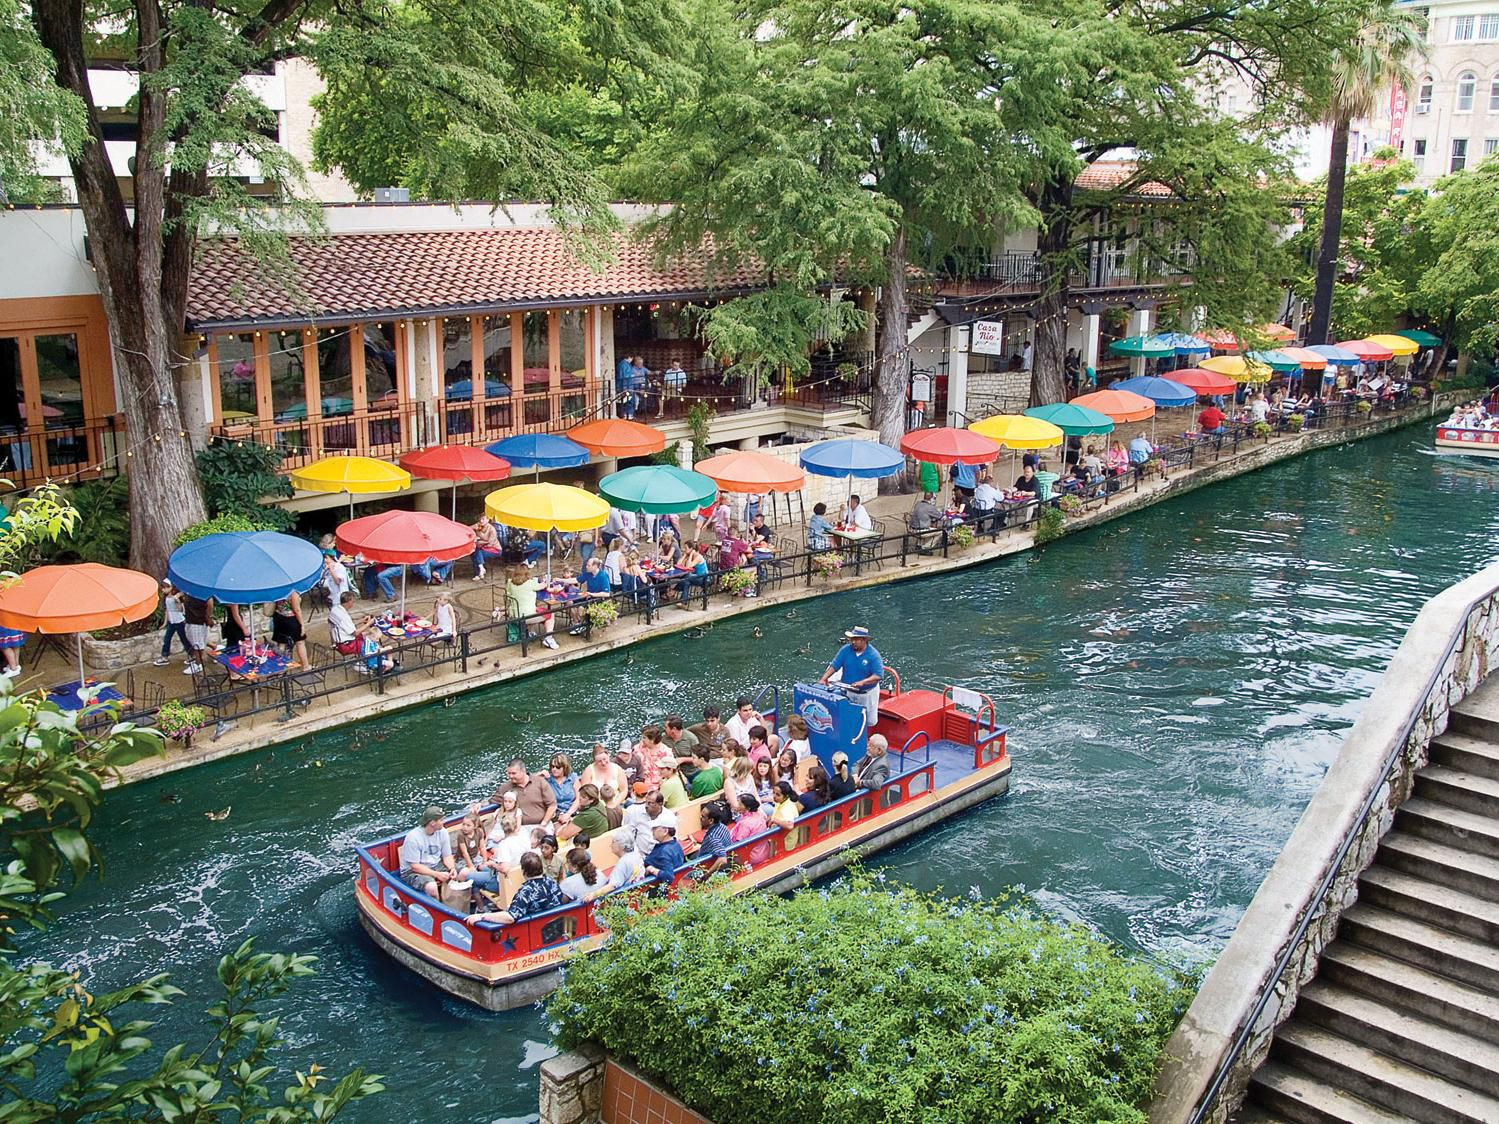 Take a boat ride on the Riverwalk